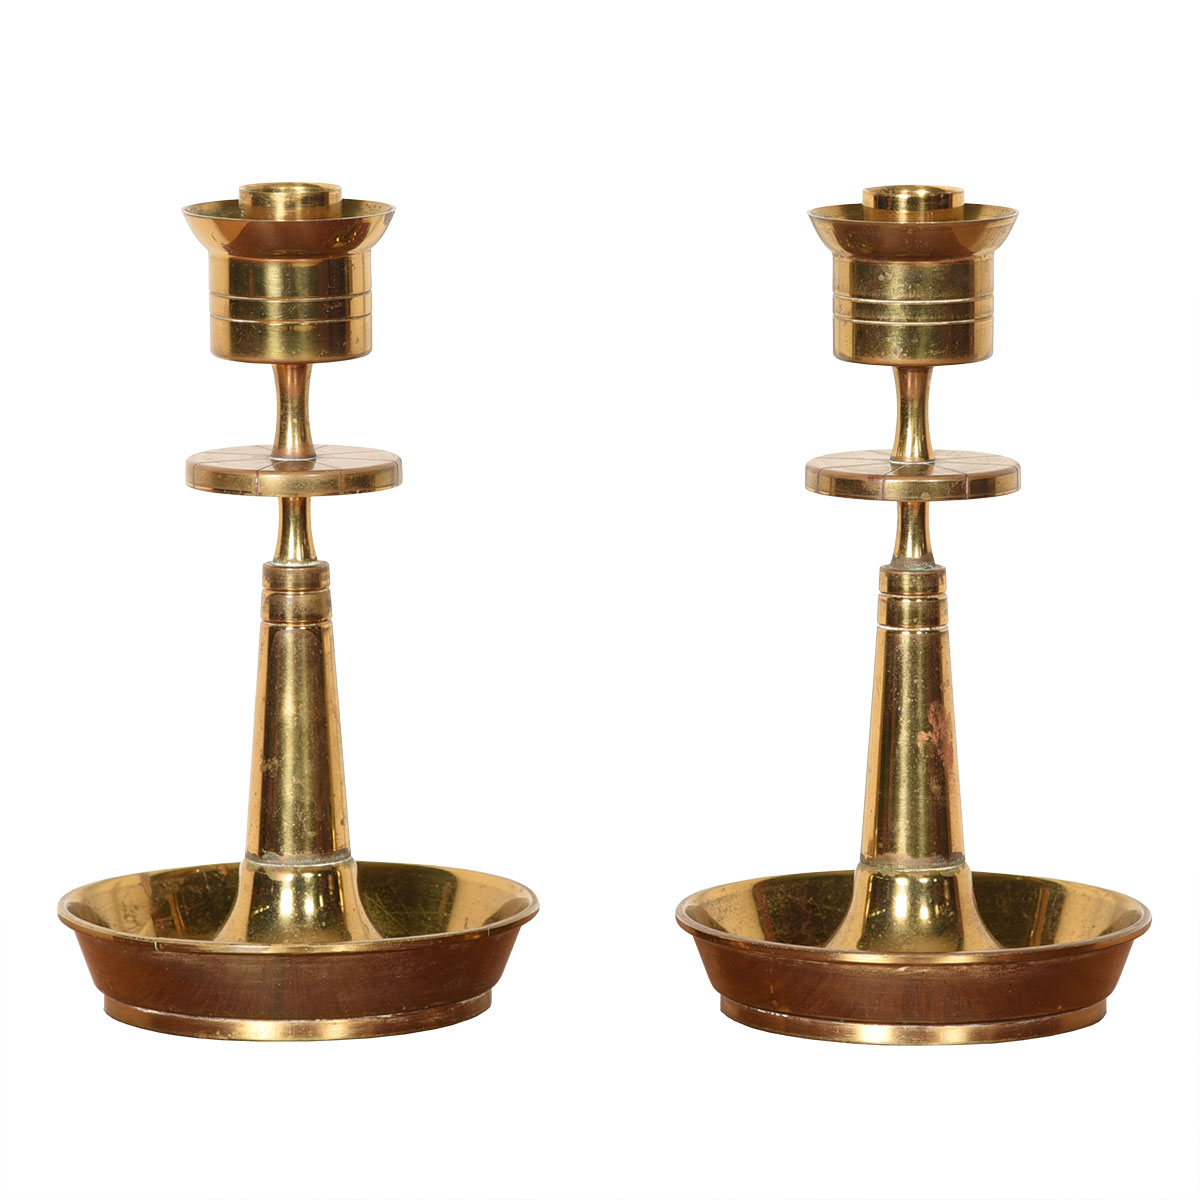 Tommi Parzinger Mid Century Brass Table Candle Holders